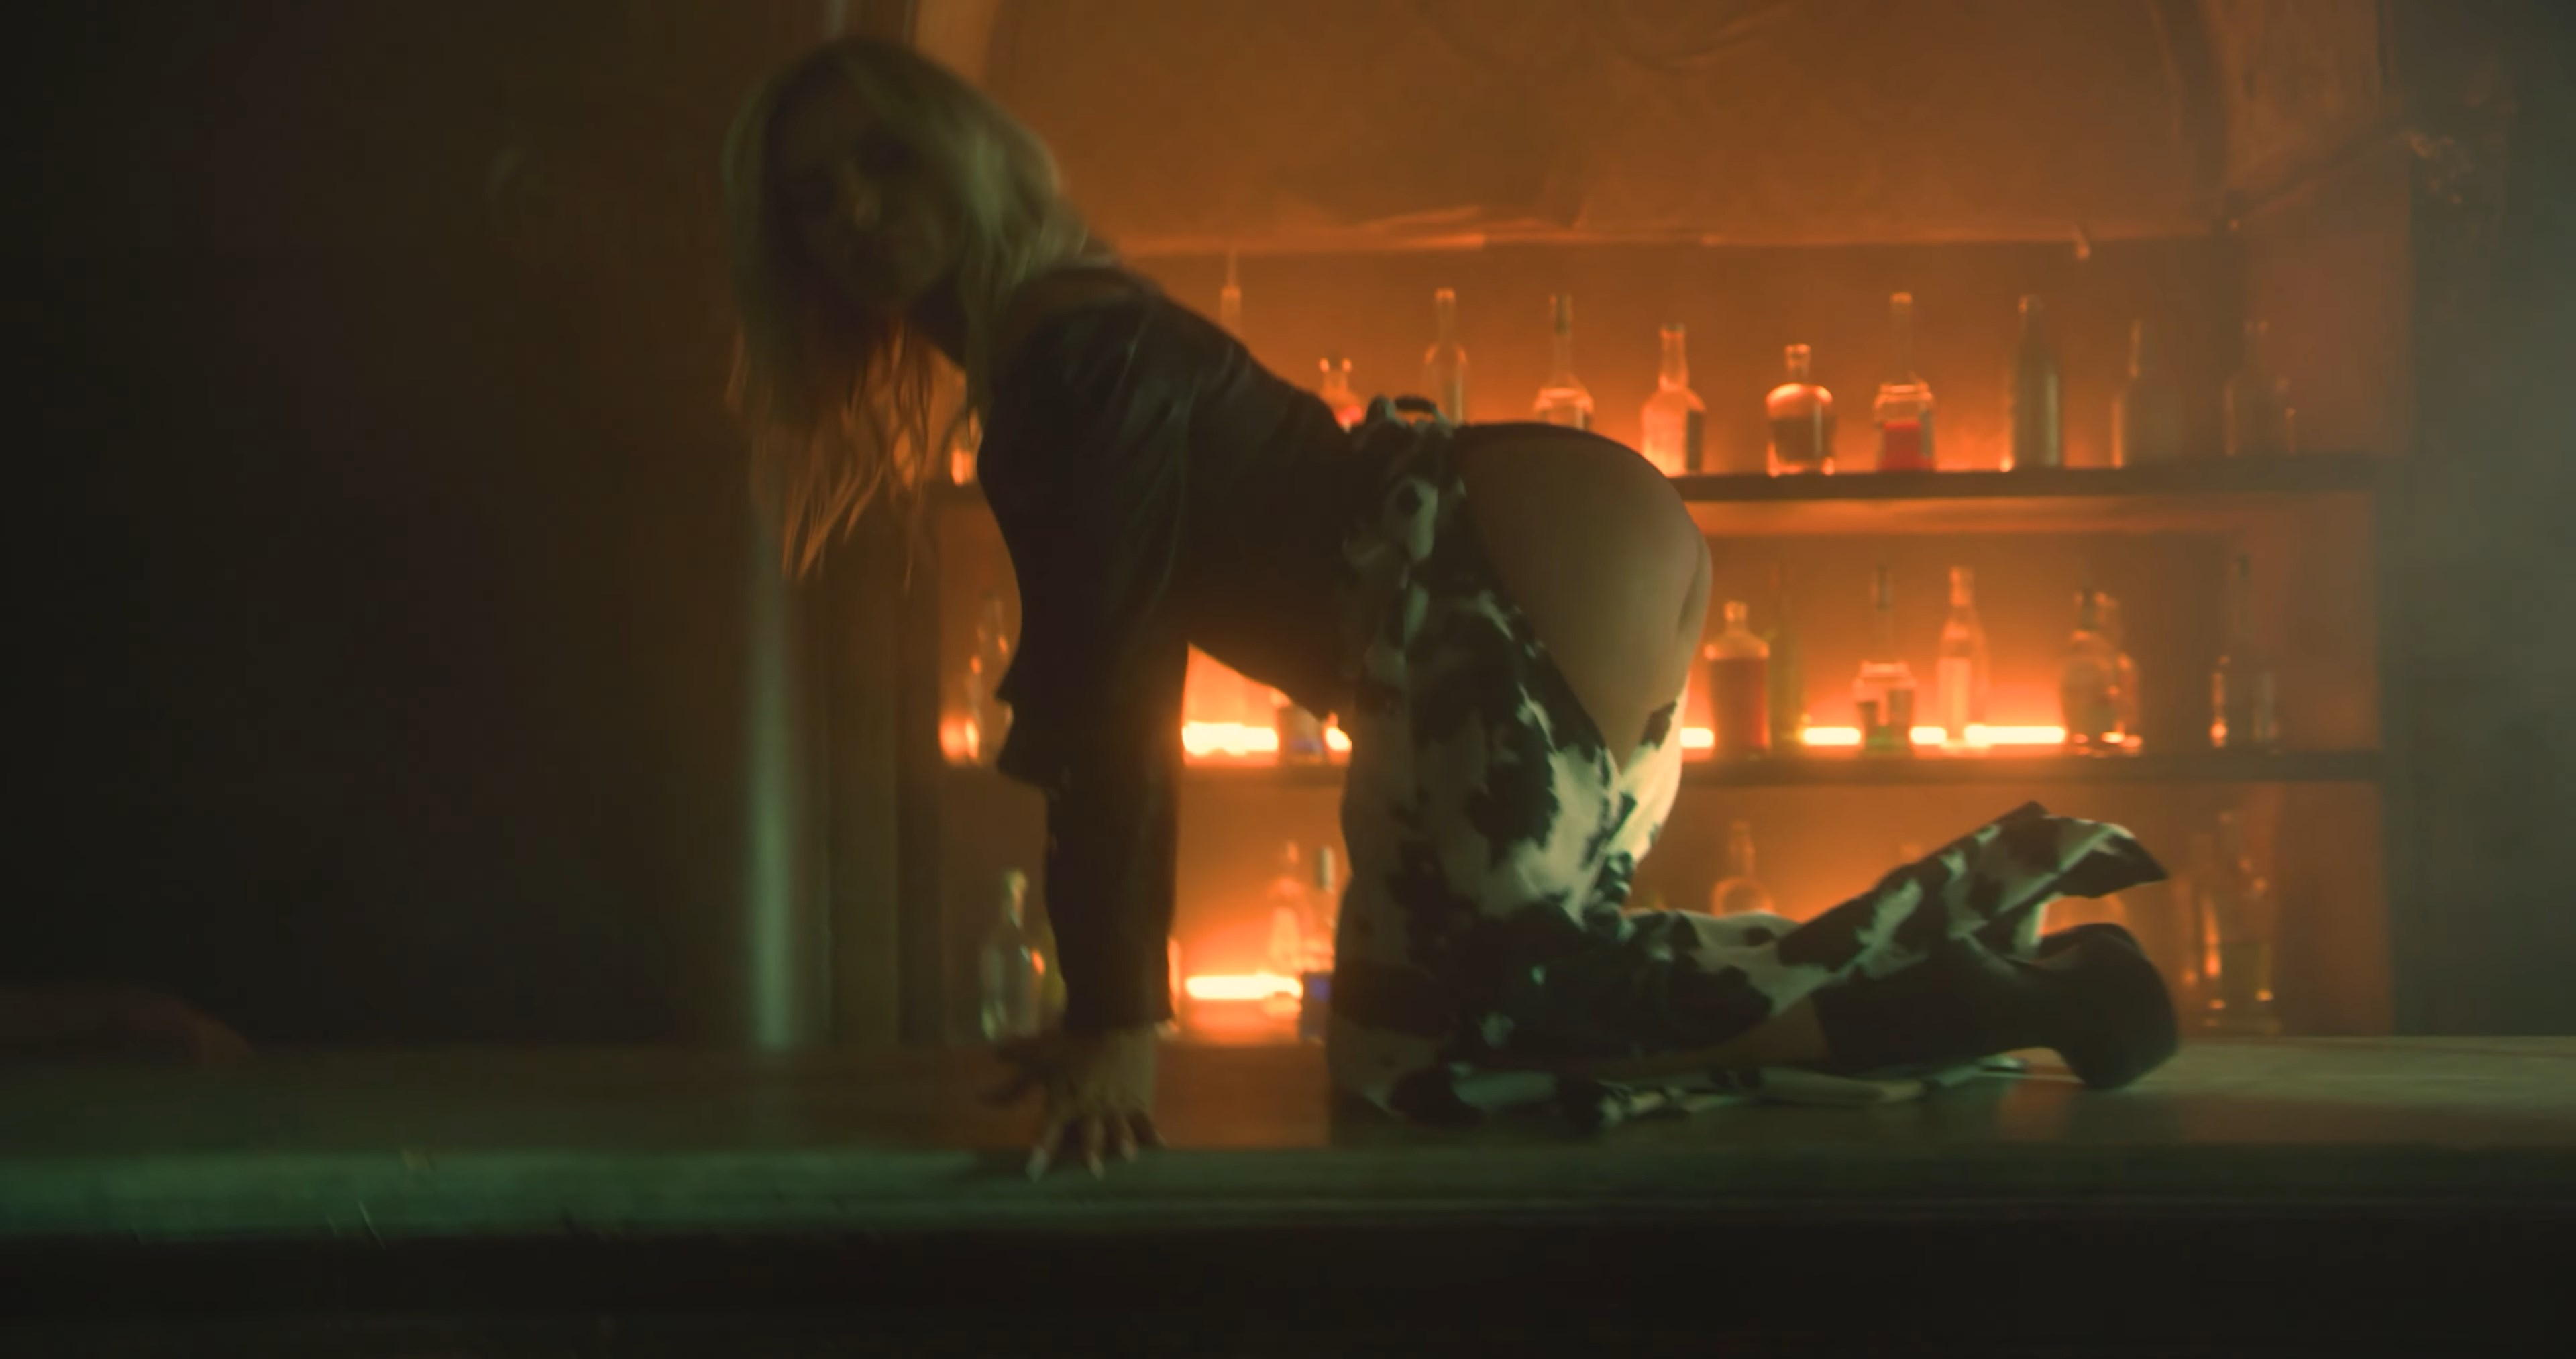 Paul Damixie feat. Alexandra Stan - Bandit   Official Video.mkv_snapshot_01.35_[2020.10.09_16.21.57].jpg